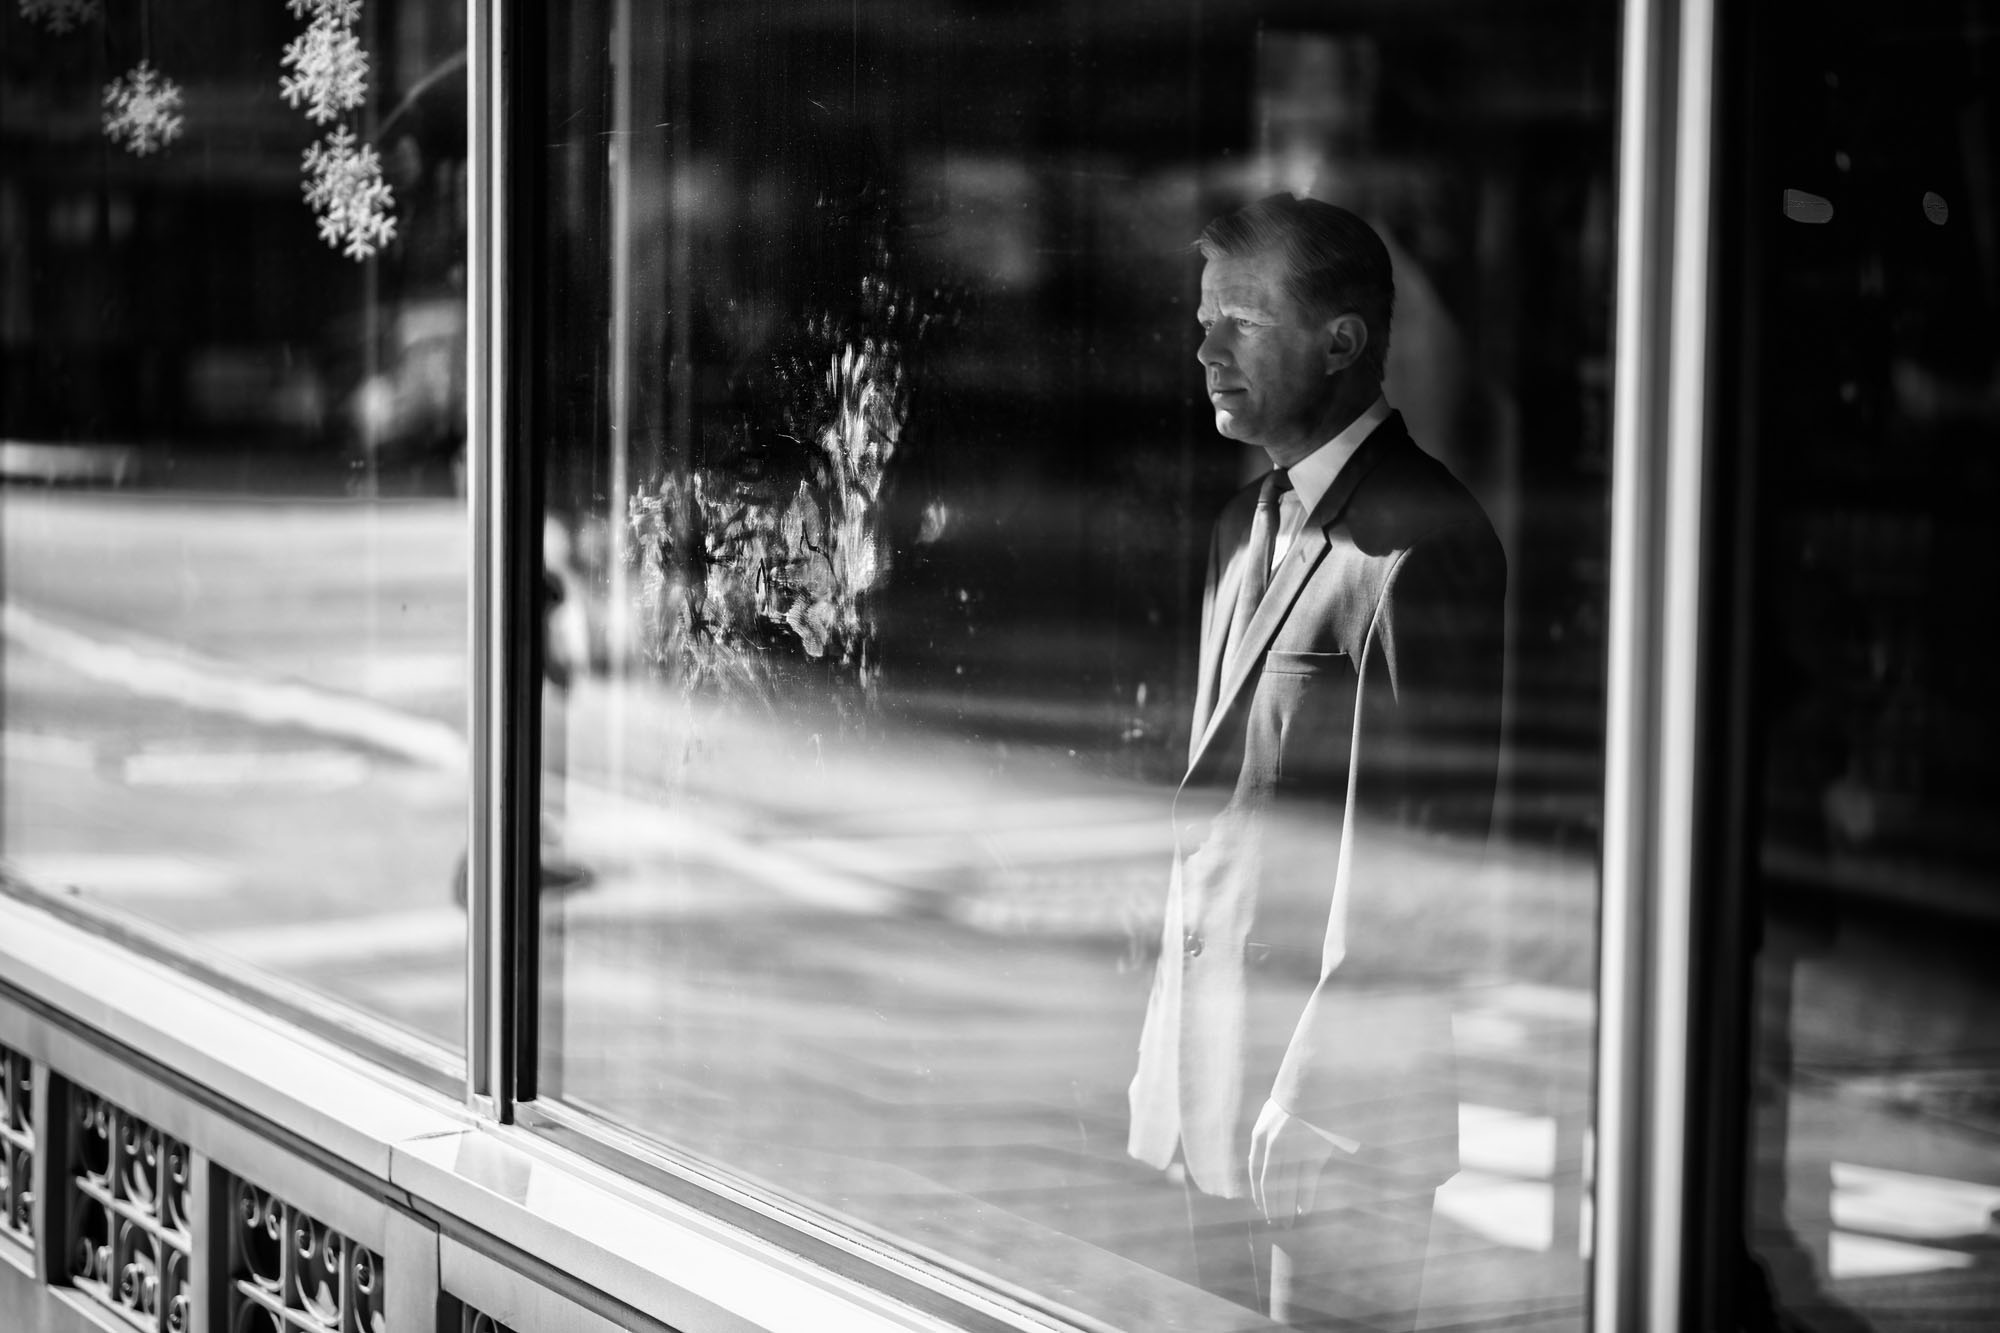 A wax figure of President John F. Kennedy faces out a window in downtown DC on February 6, 2017.